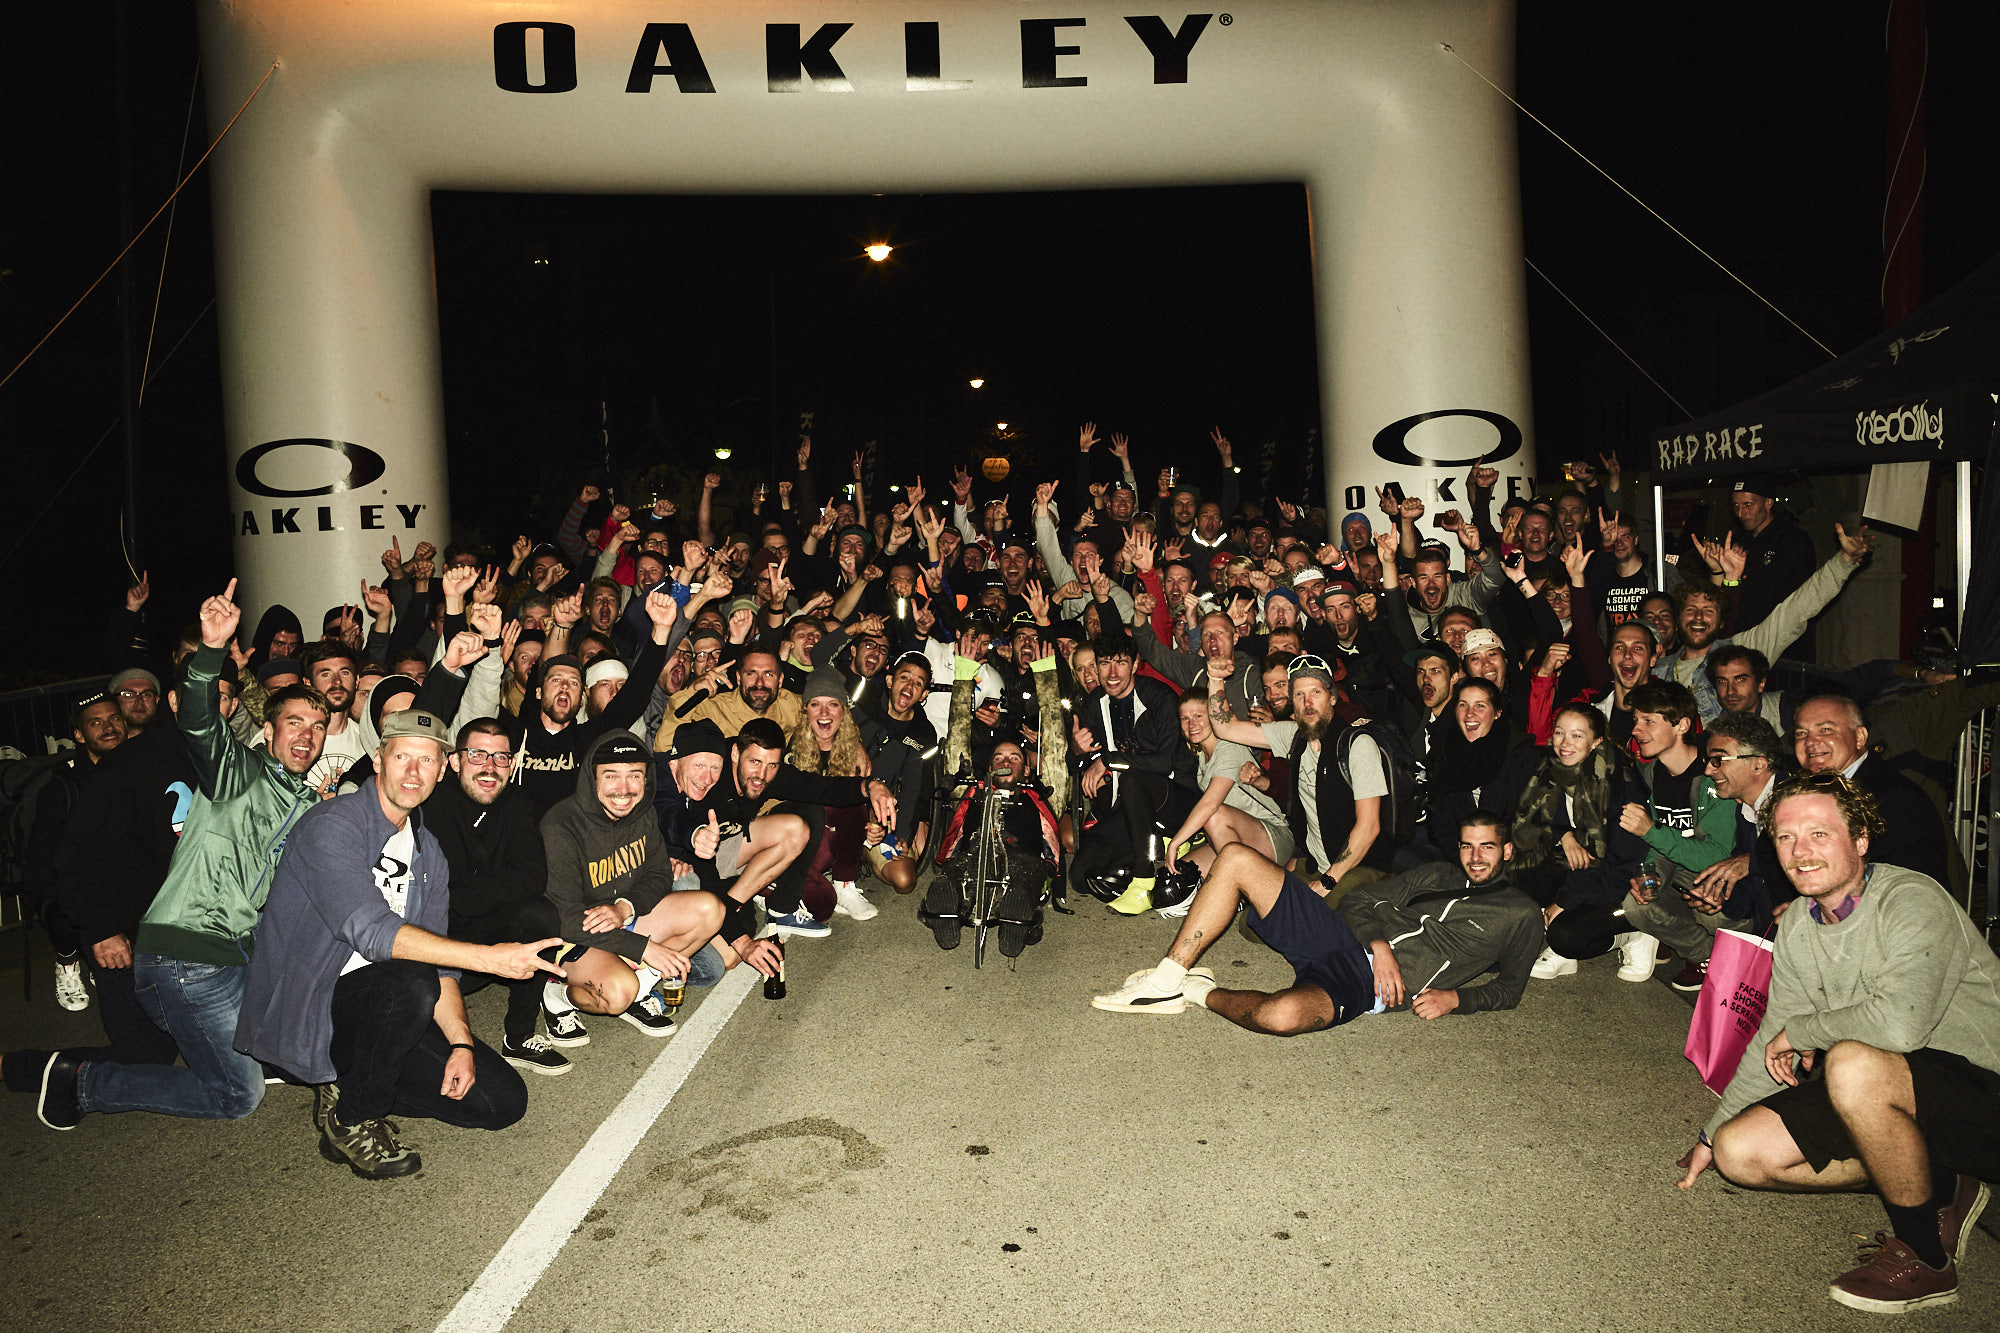 5 nights in a row. RAD RACE BLOCK PARTY on the Tour de Friends!